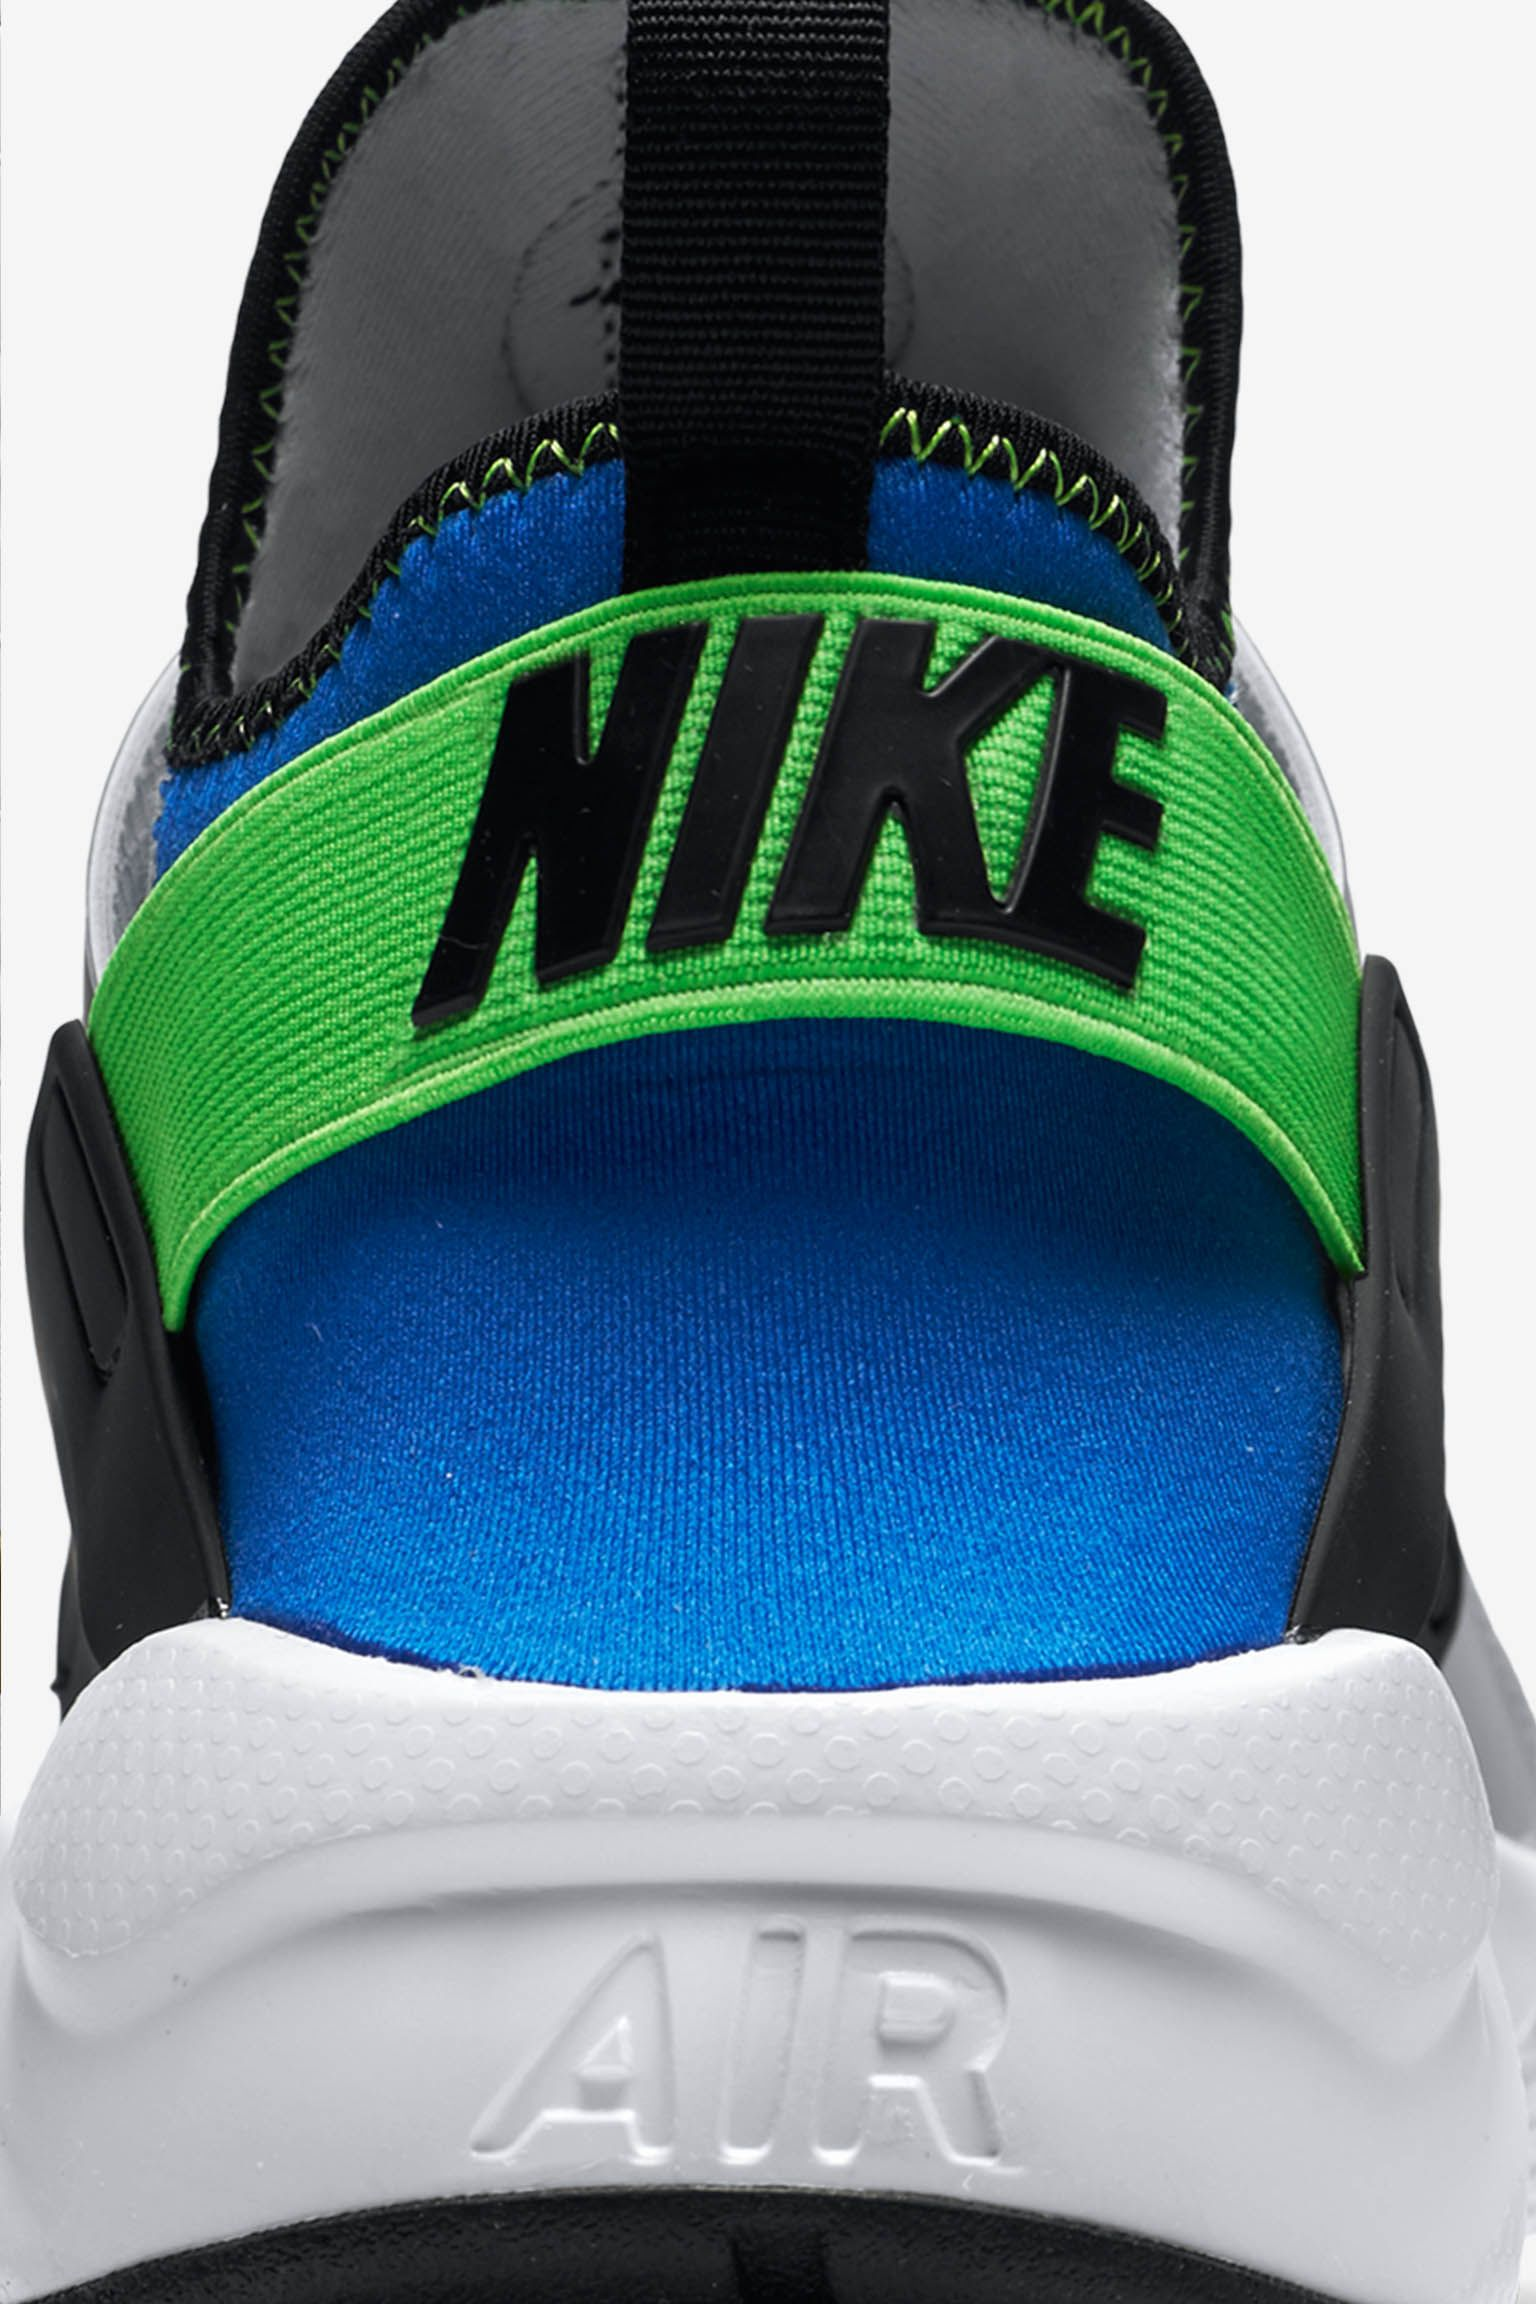 Nike Air Huarache Ultra 'Royal Blue & Scream Green'